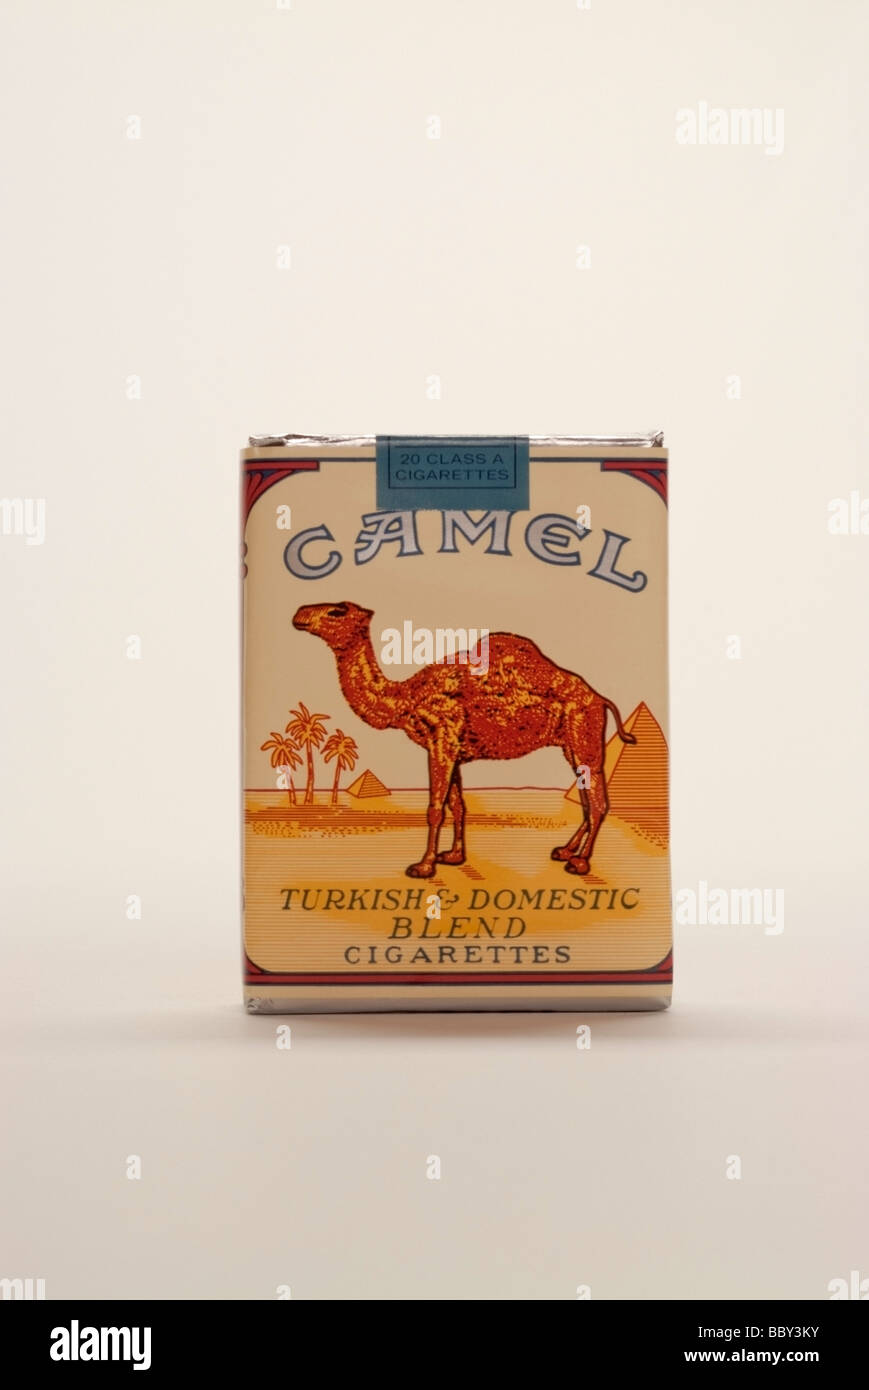 Package of Camel Cigarettes. Camel's are one of the top five selling cigarettes in the United States. - Stock Image